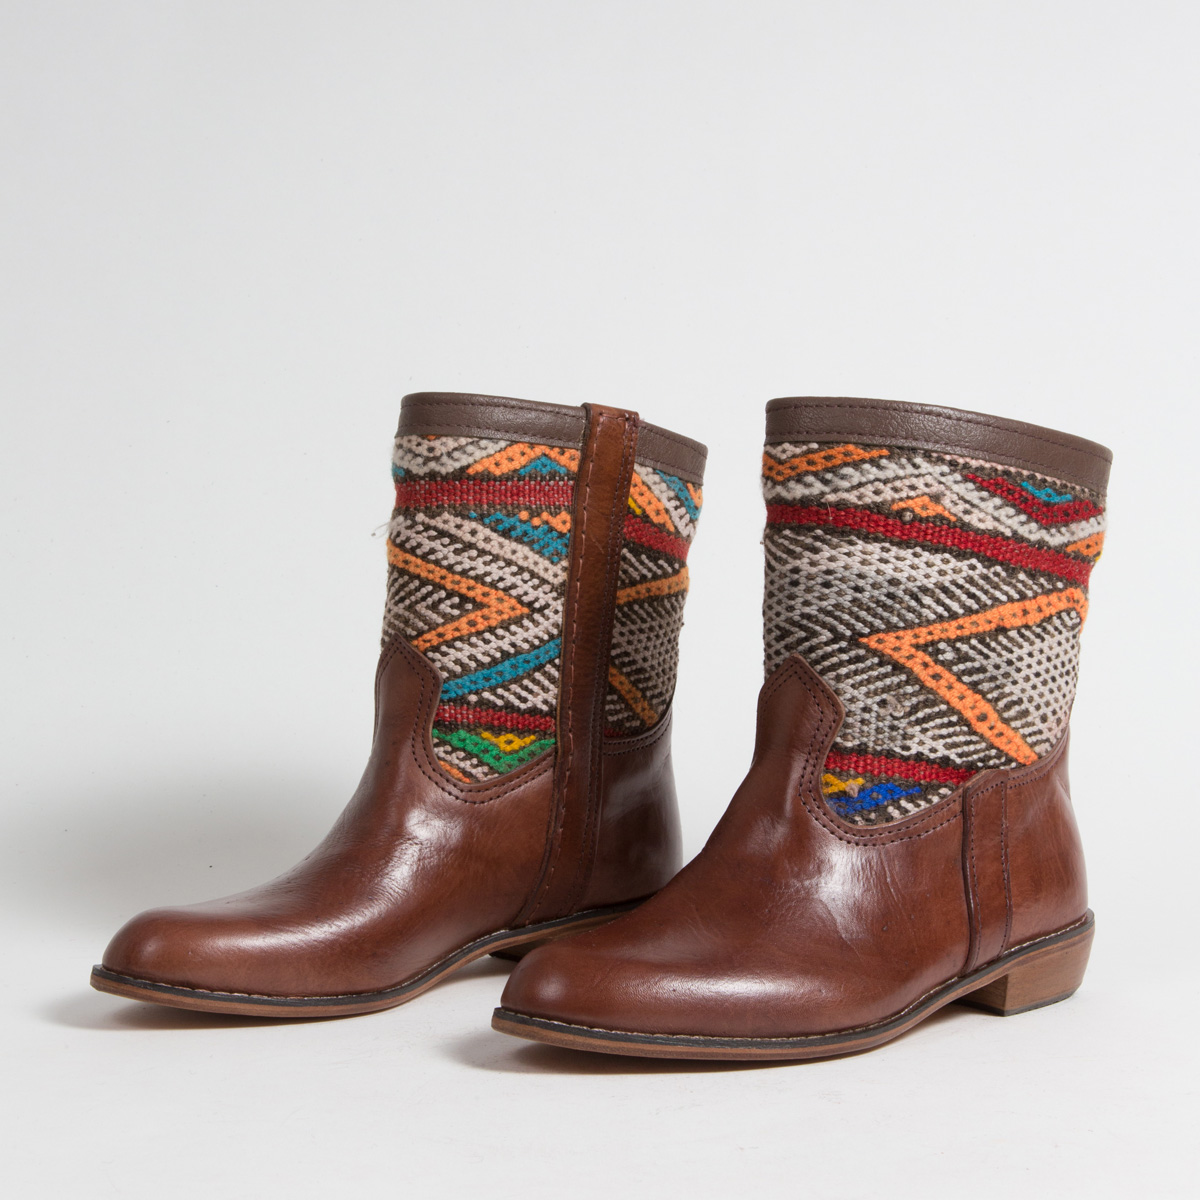 Bottines Kilim cuir mababouche artisanales (Réf. MCM5-39)